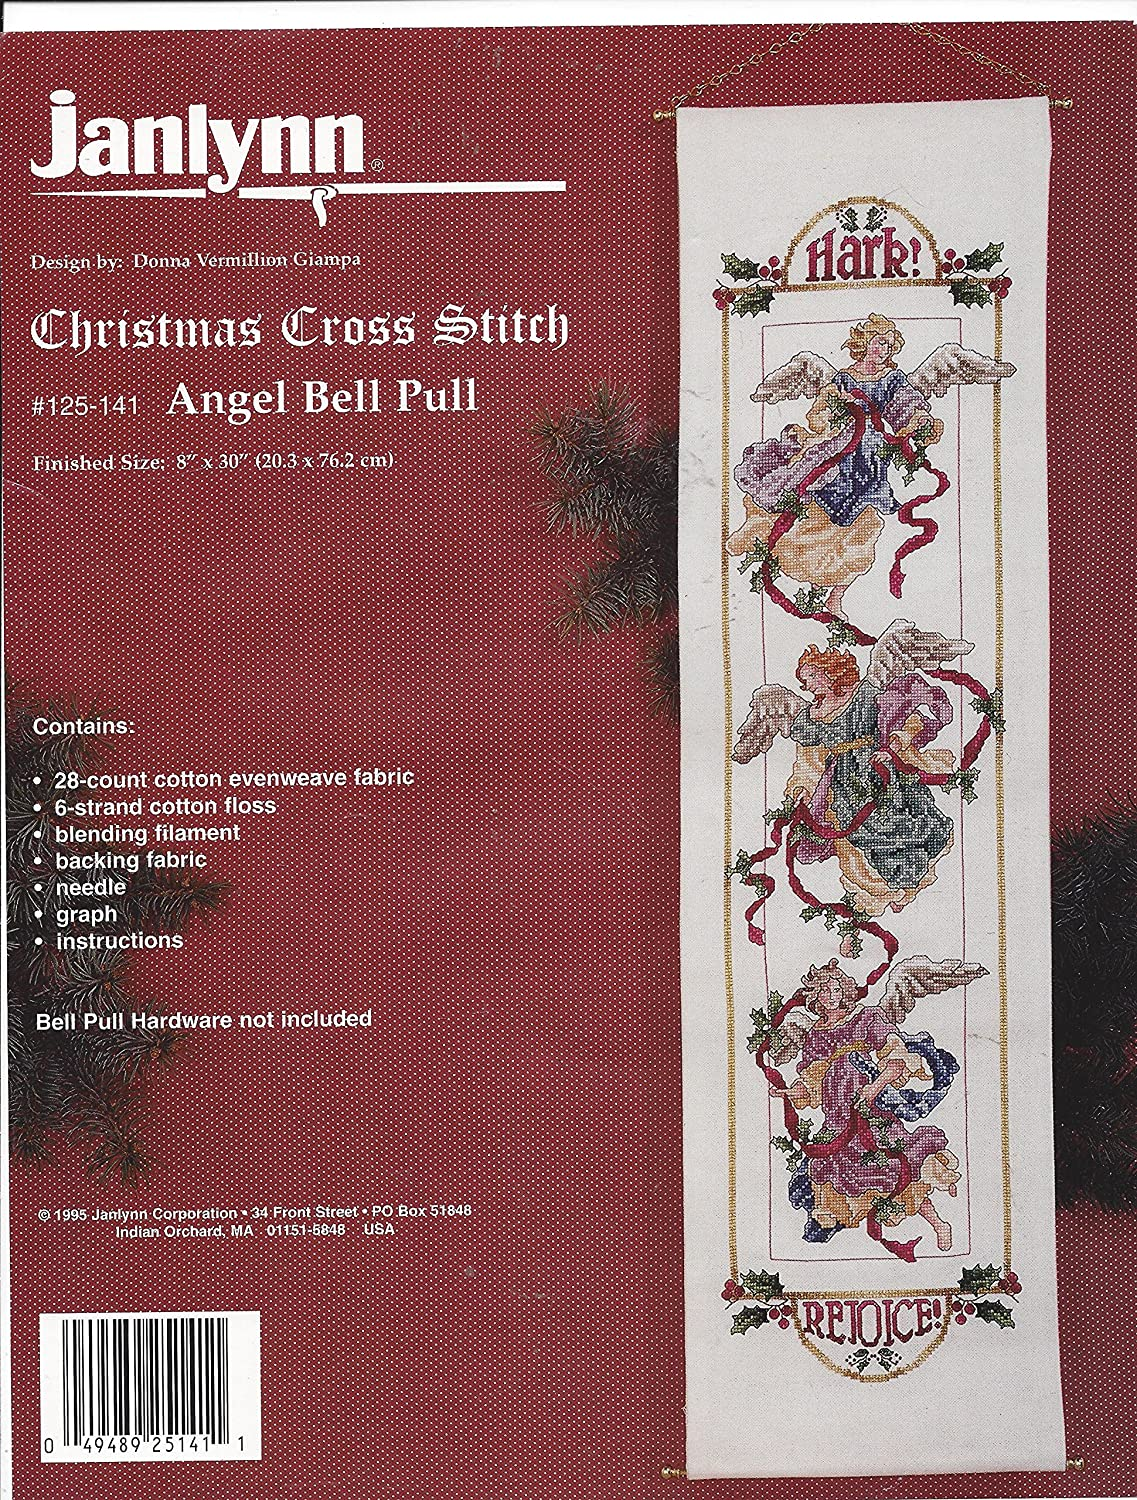 Angel Bell Pull Super-cheap Counted Cross Stitch Kit New Shipping Free Shipping